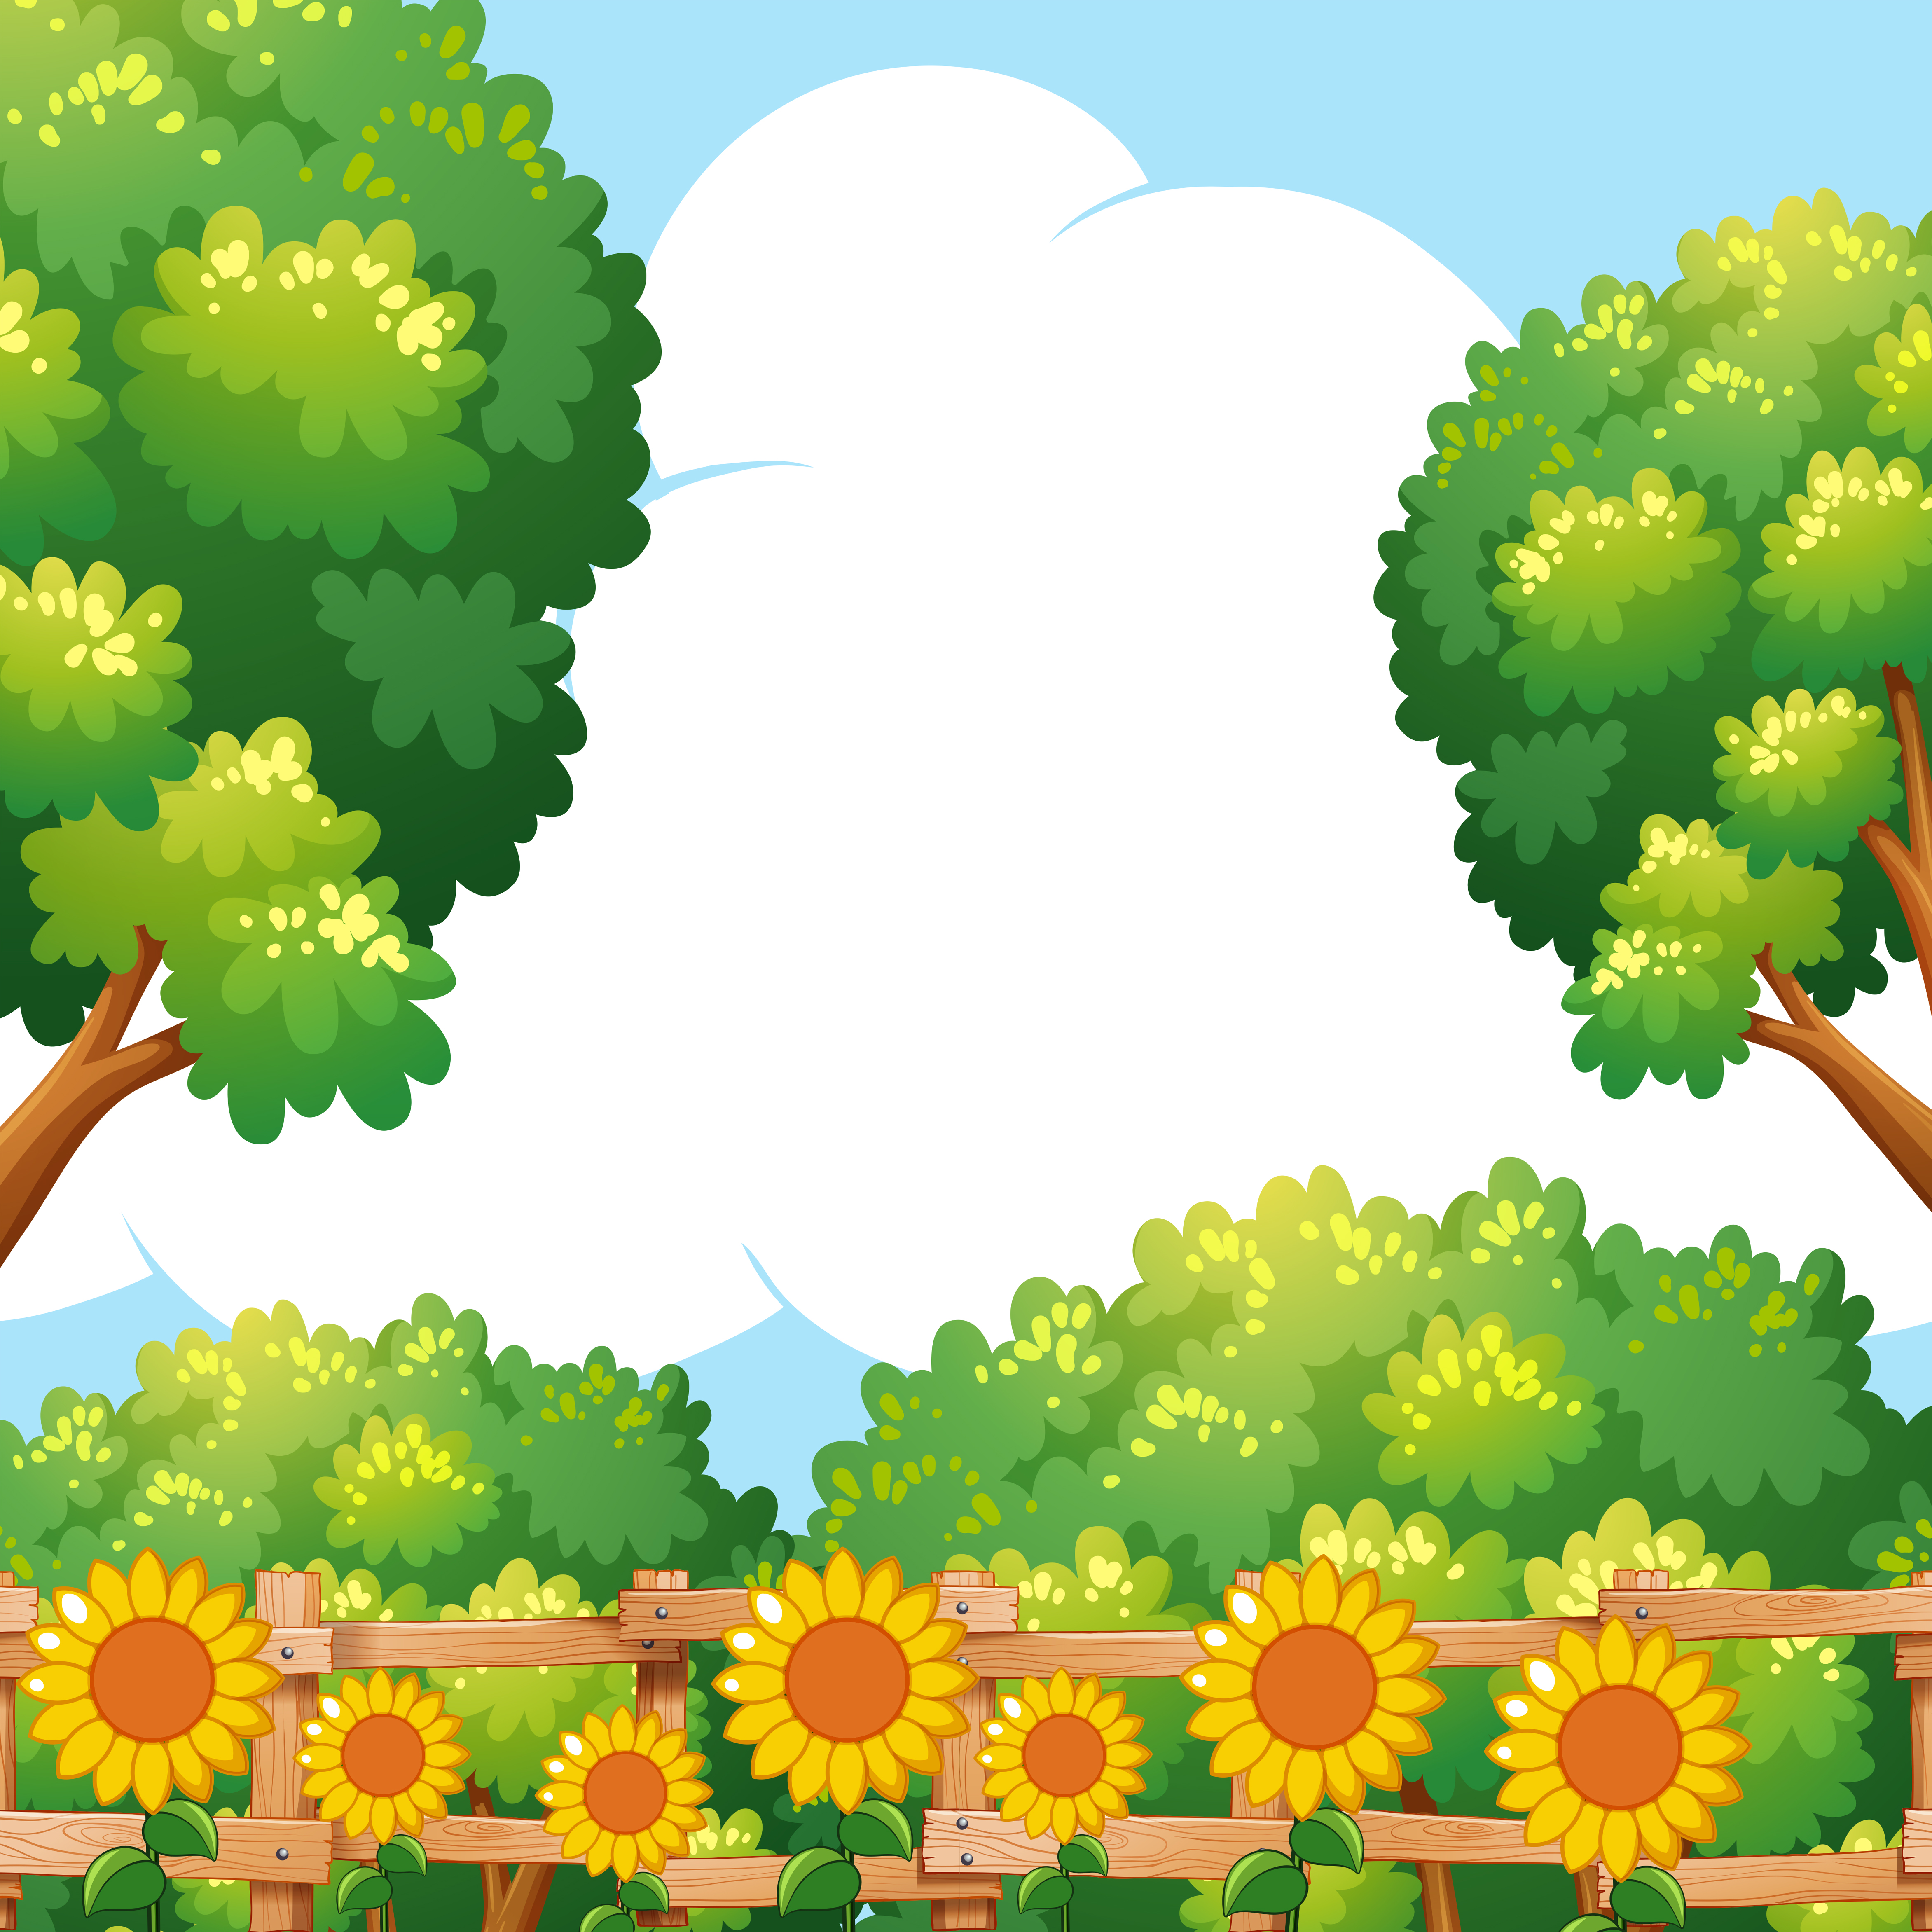 Background scene with sunflowers in garden - Download Free ...